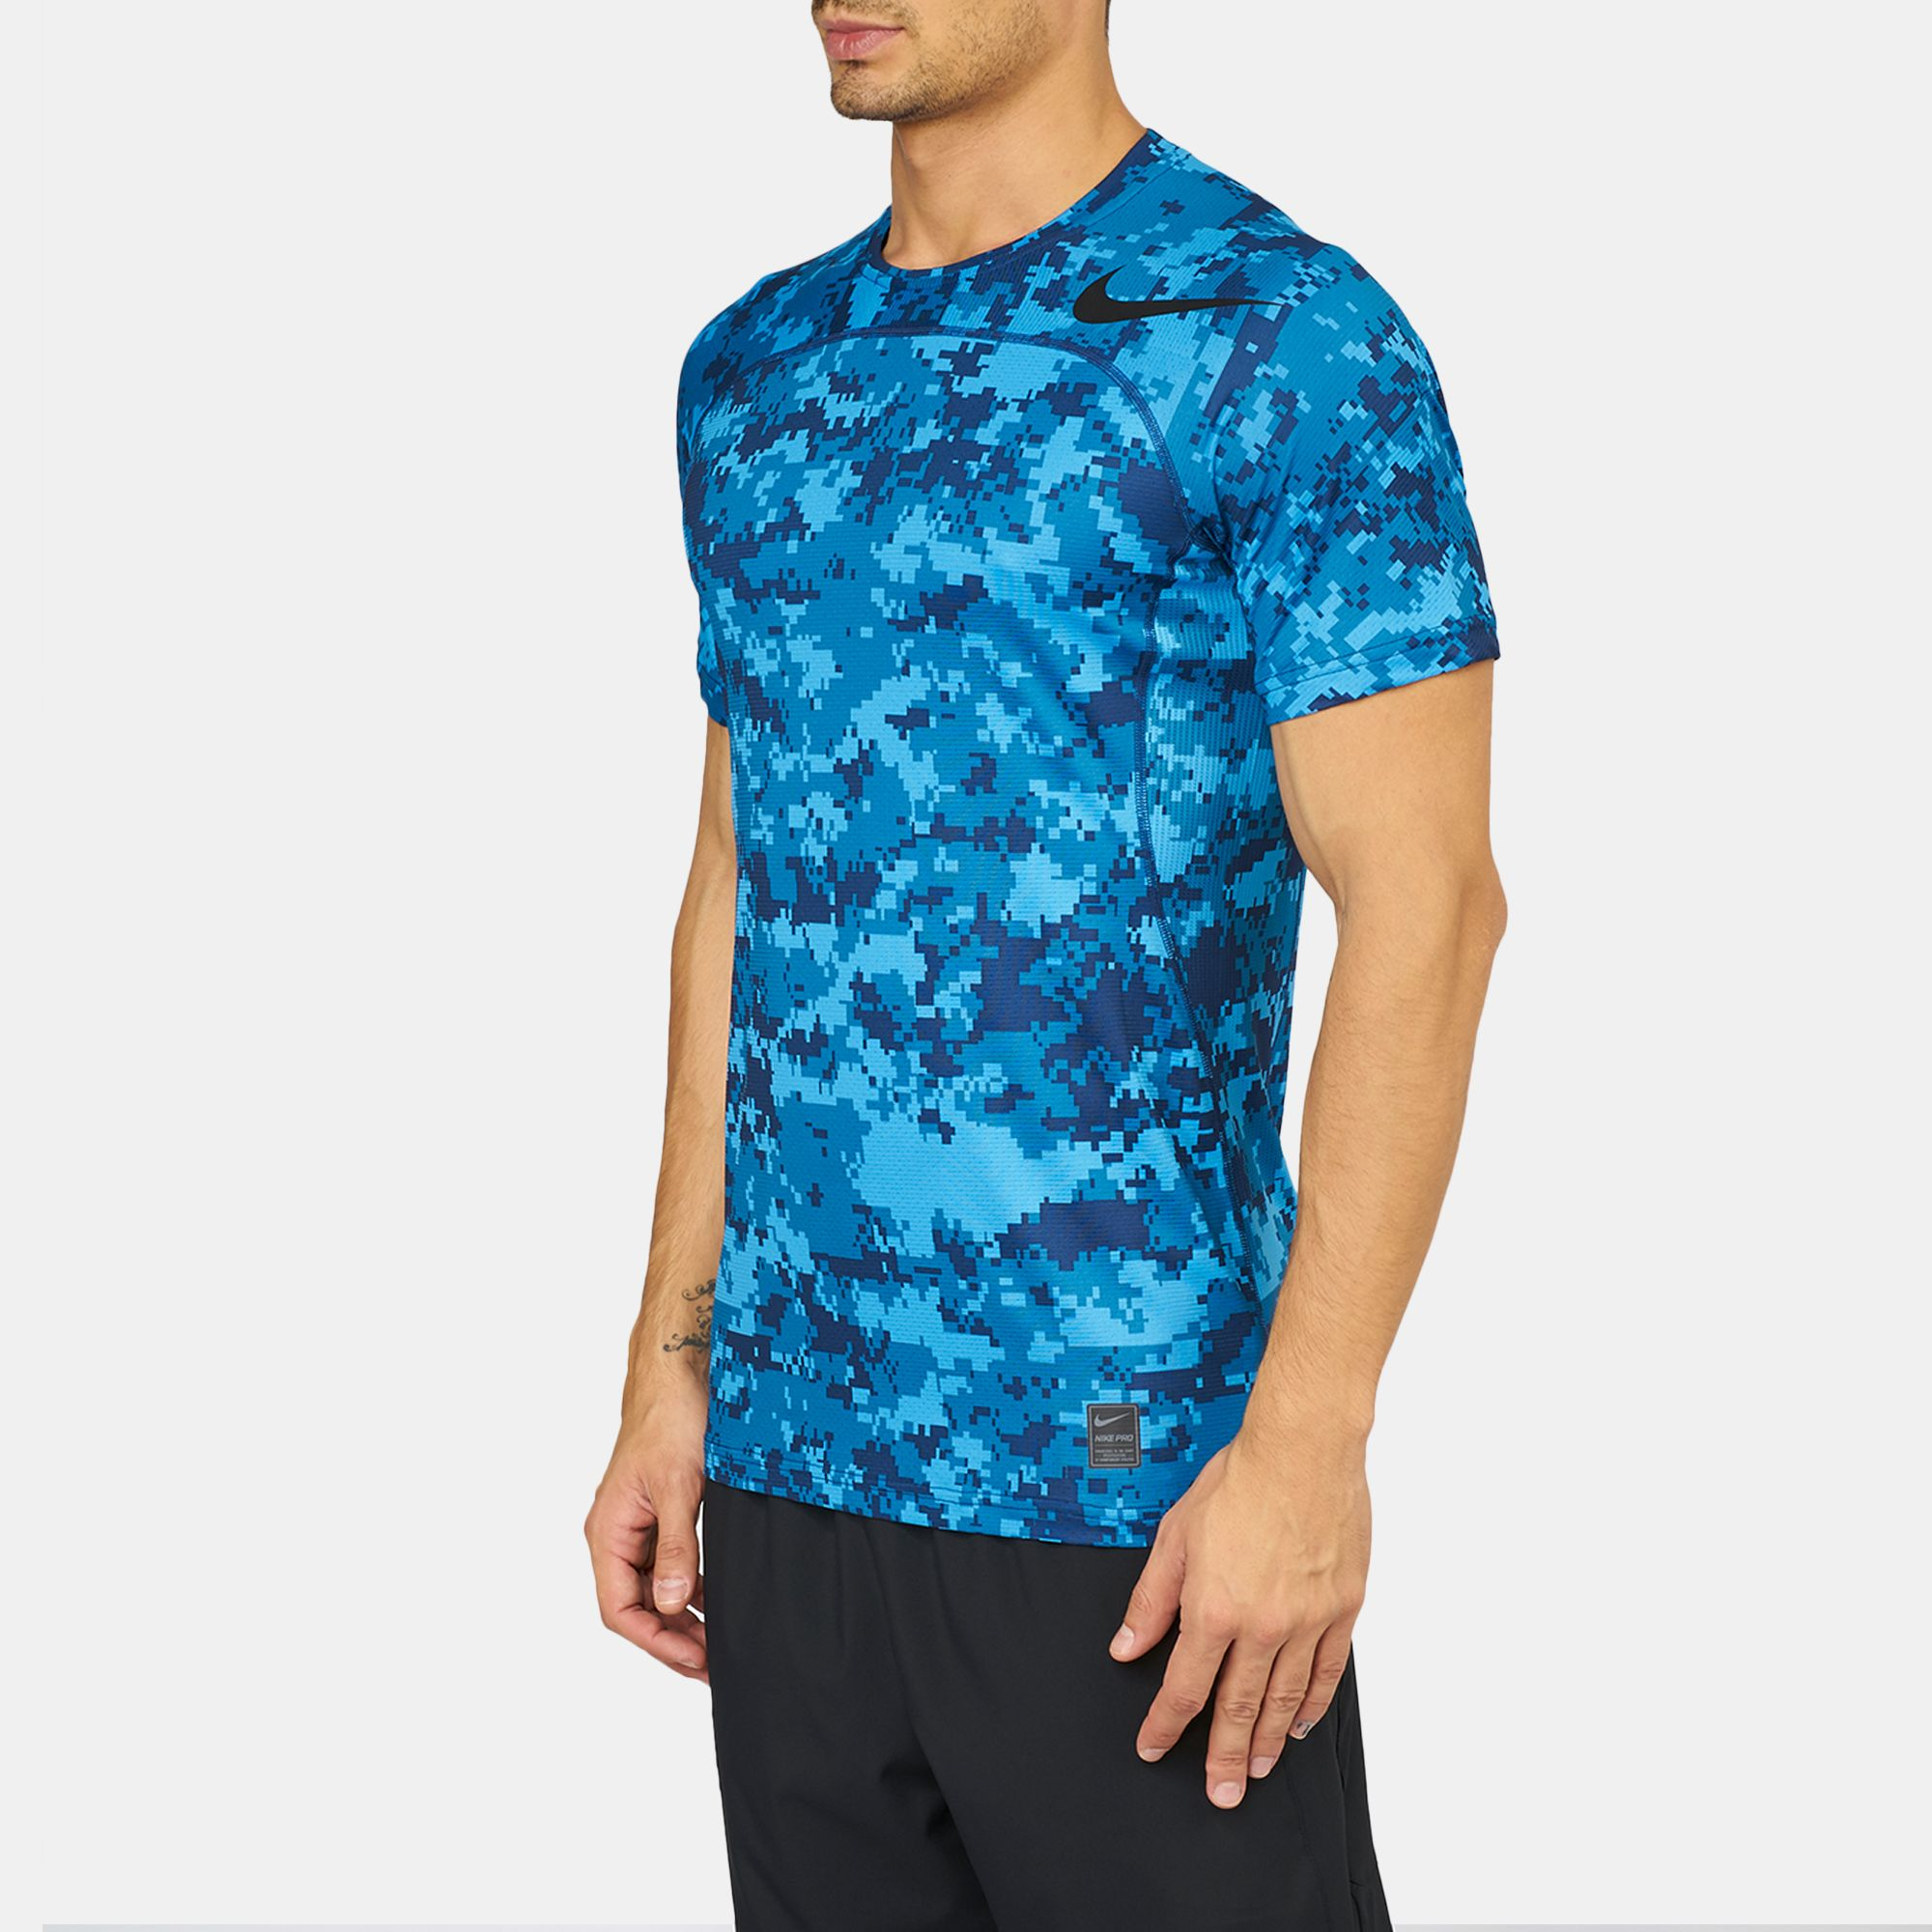 8732bd6a Shop Blue Nike Pro HyperCool Digi Camo Training T-Shirt for Mens by ...